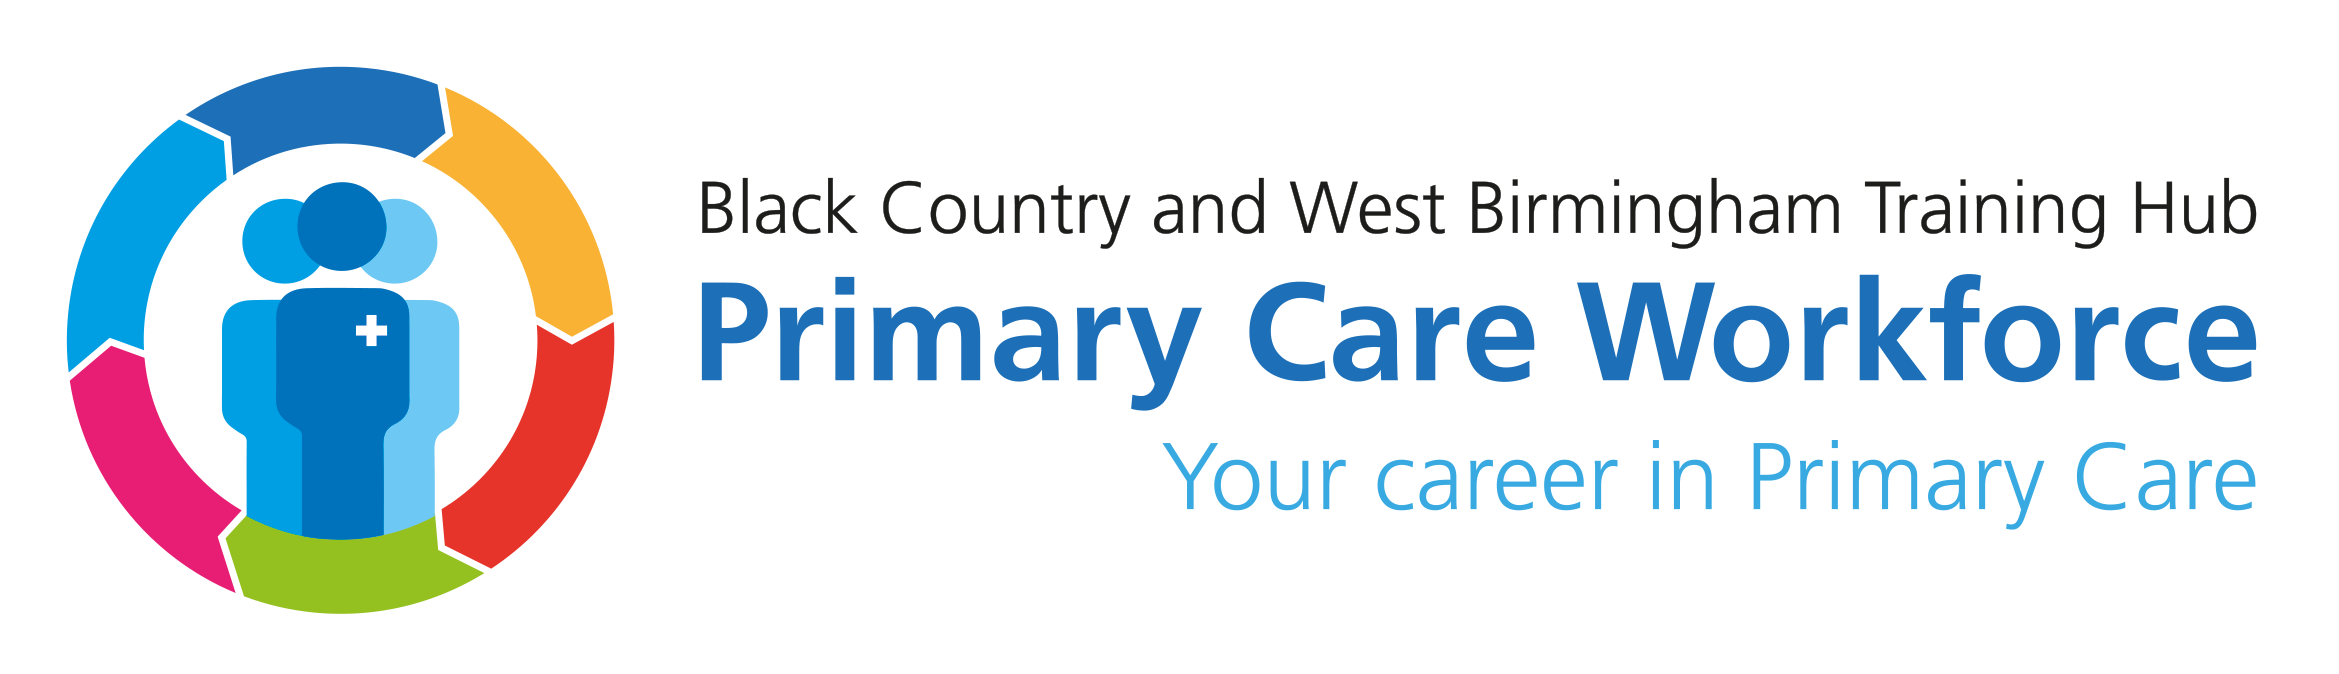 Primary care workforce logo